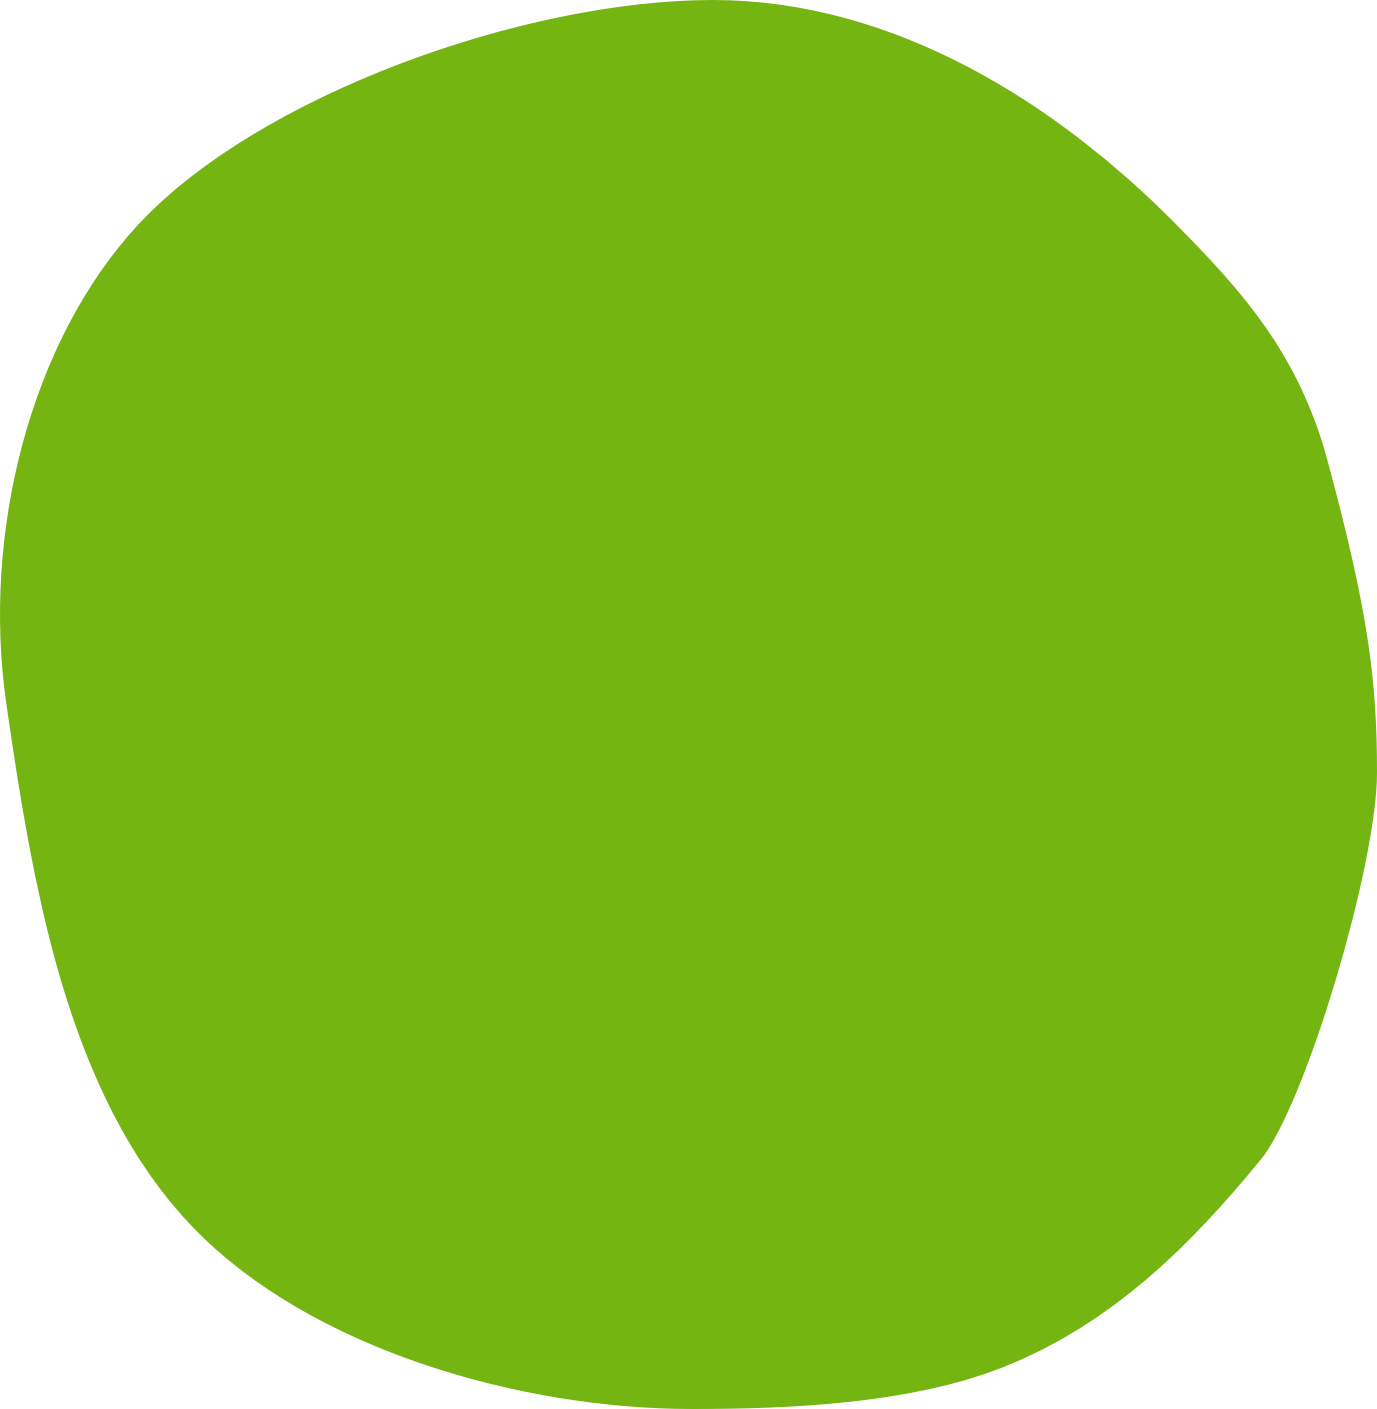 Oval 3 Copy 3.png